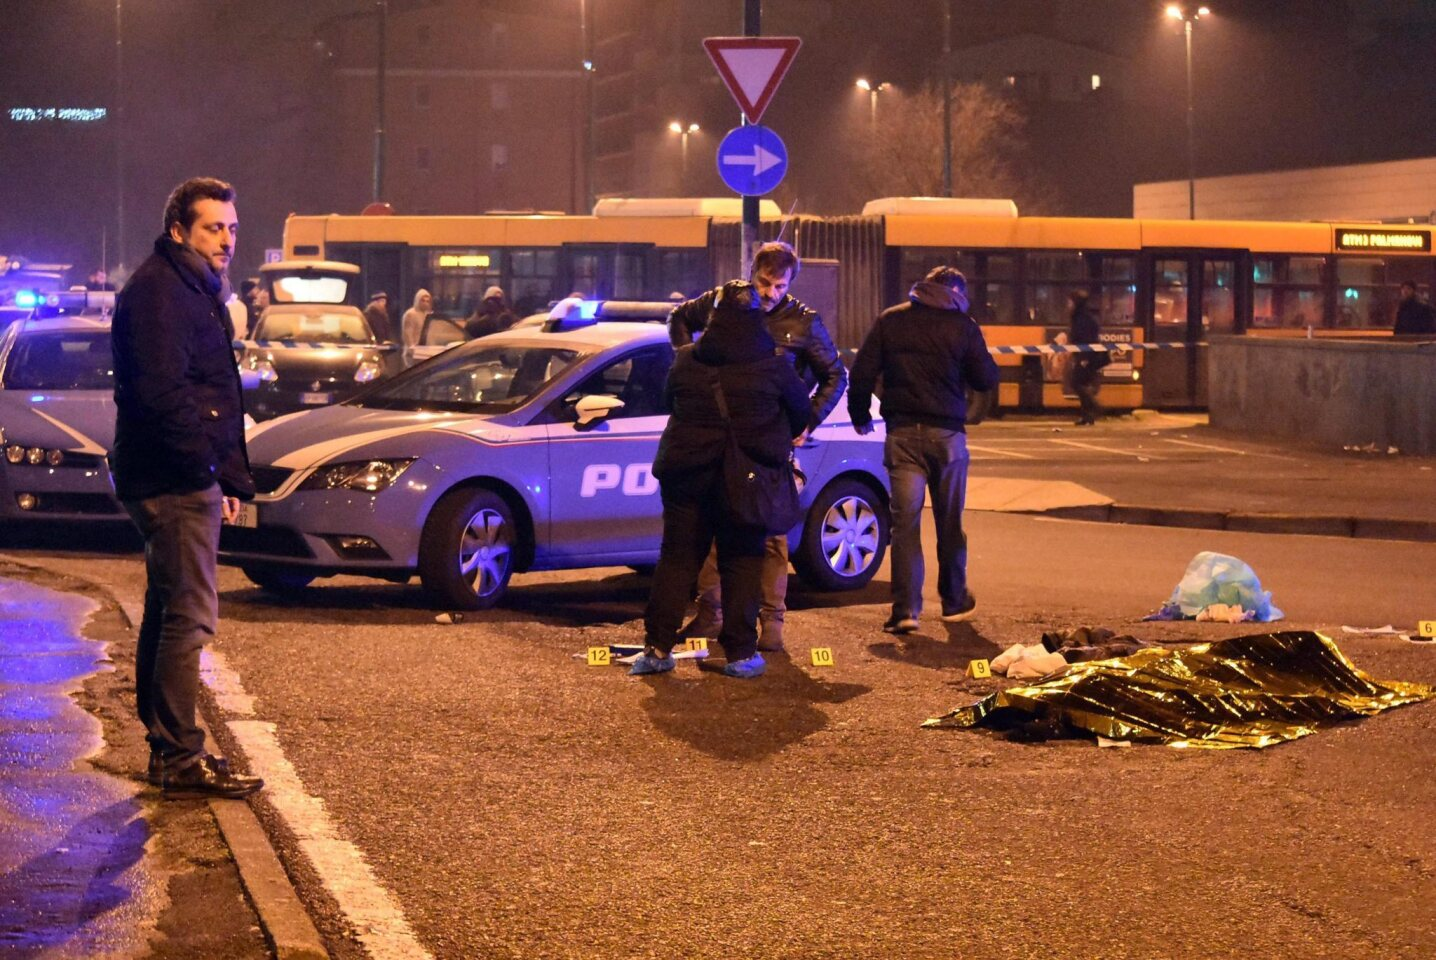 Italian police stand around the body of suspect Anis Amri after a shootout in Milan's Sesto San Giovanni neighborhood early Friday.